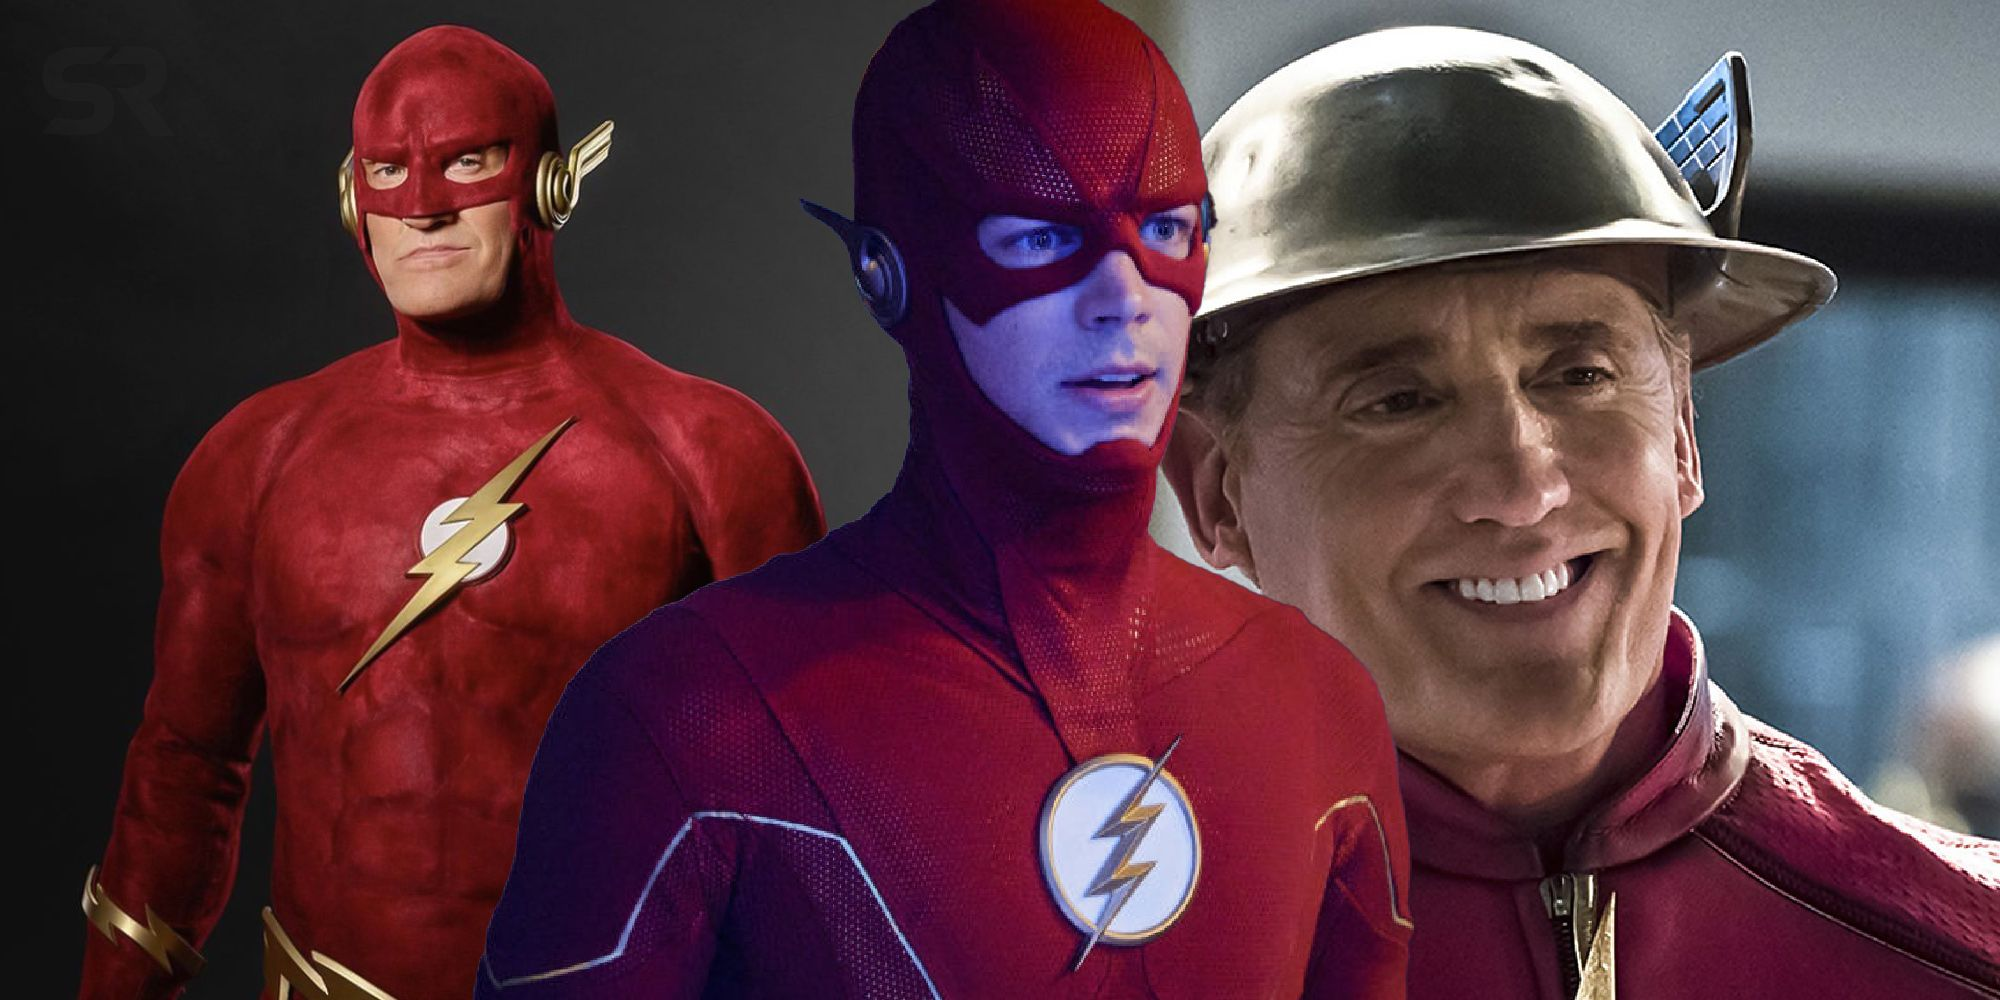 All 11 Versions Of The Flash To Appear In The Arrowverse